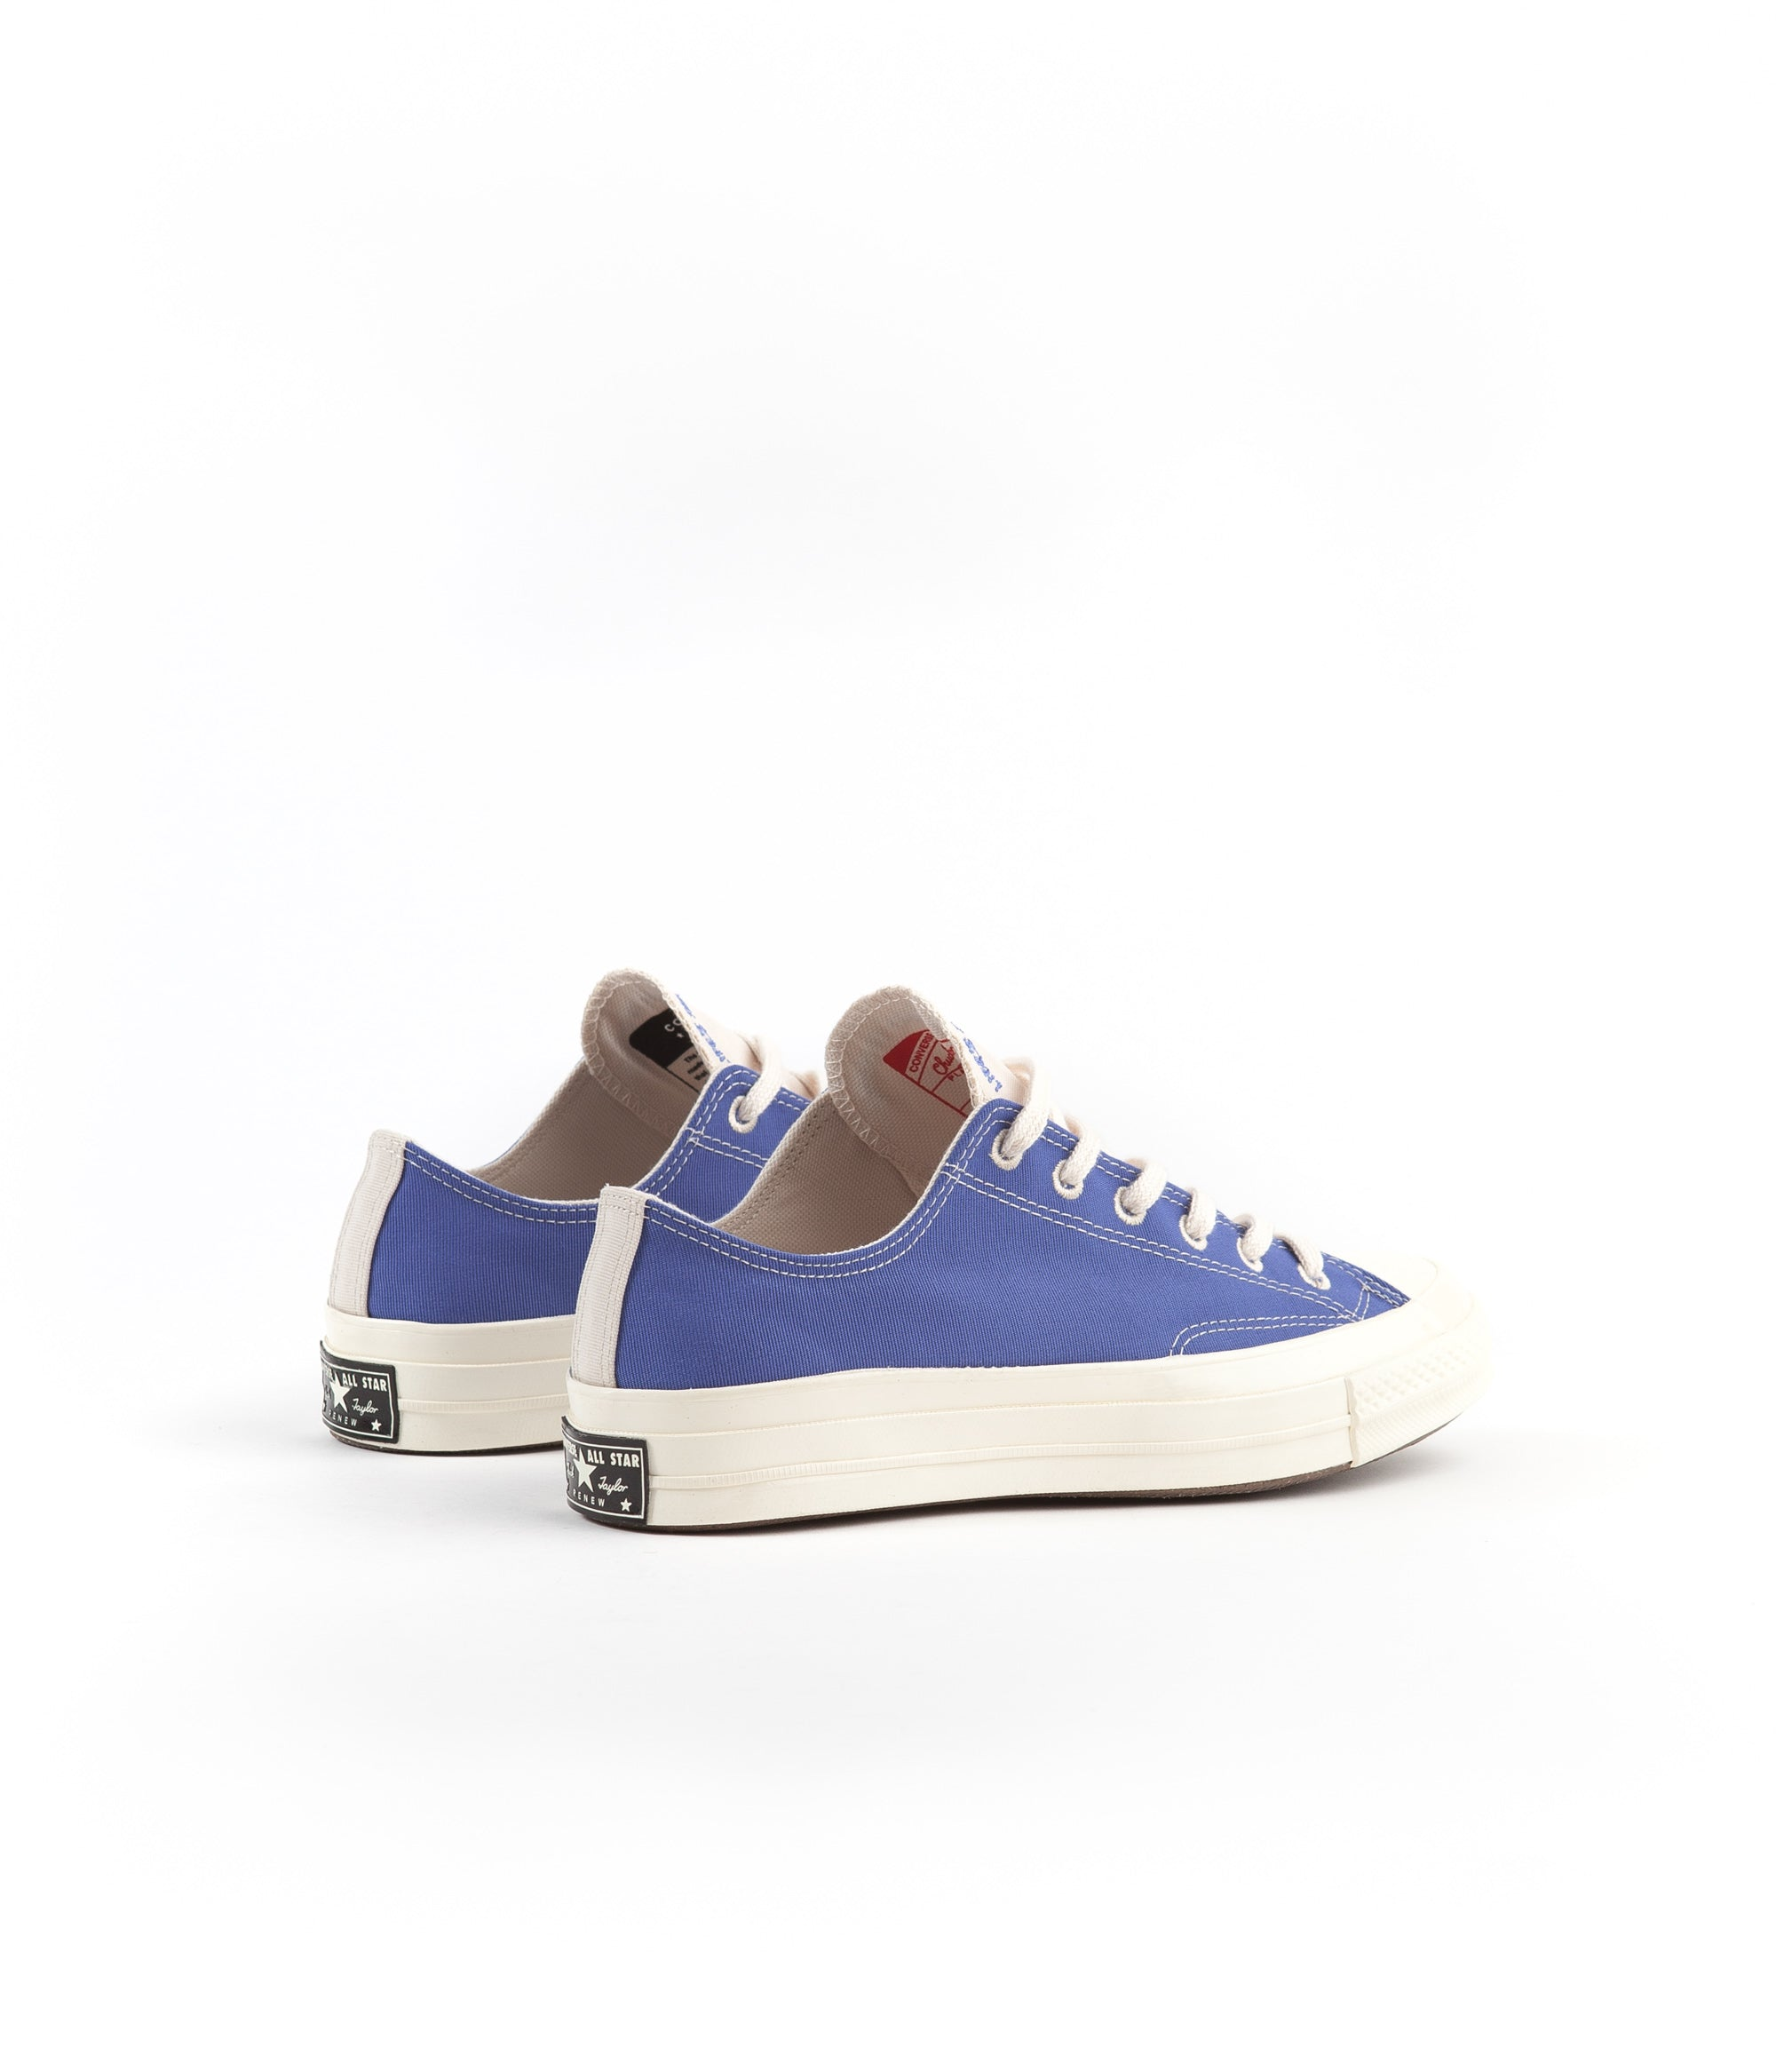 Converse CTAS 70's Ox Renew Shoes - Ozone Blue / Natural / Black